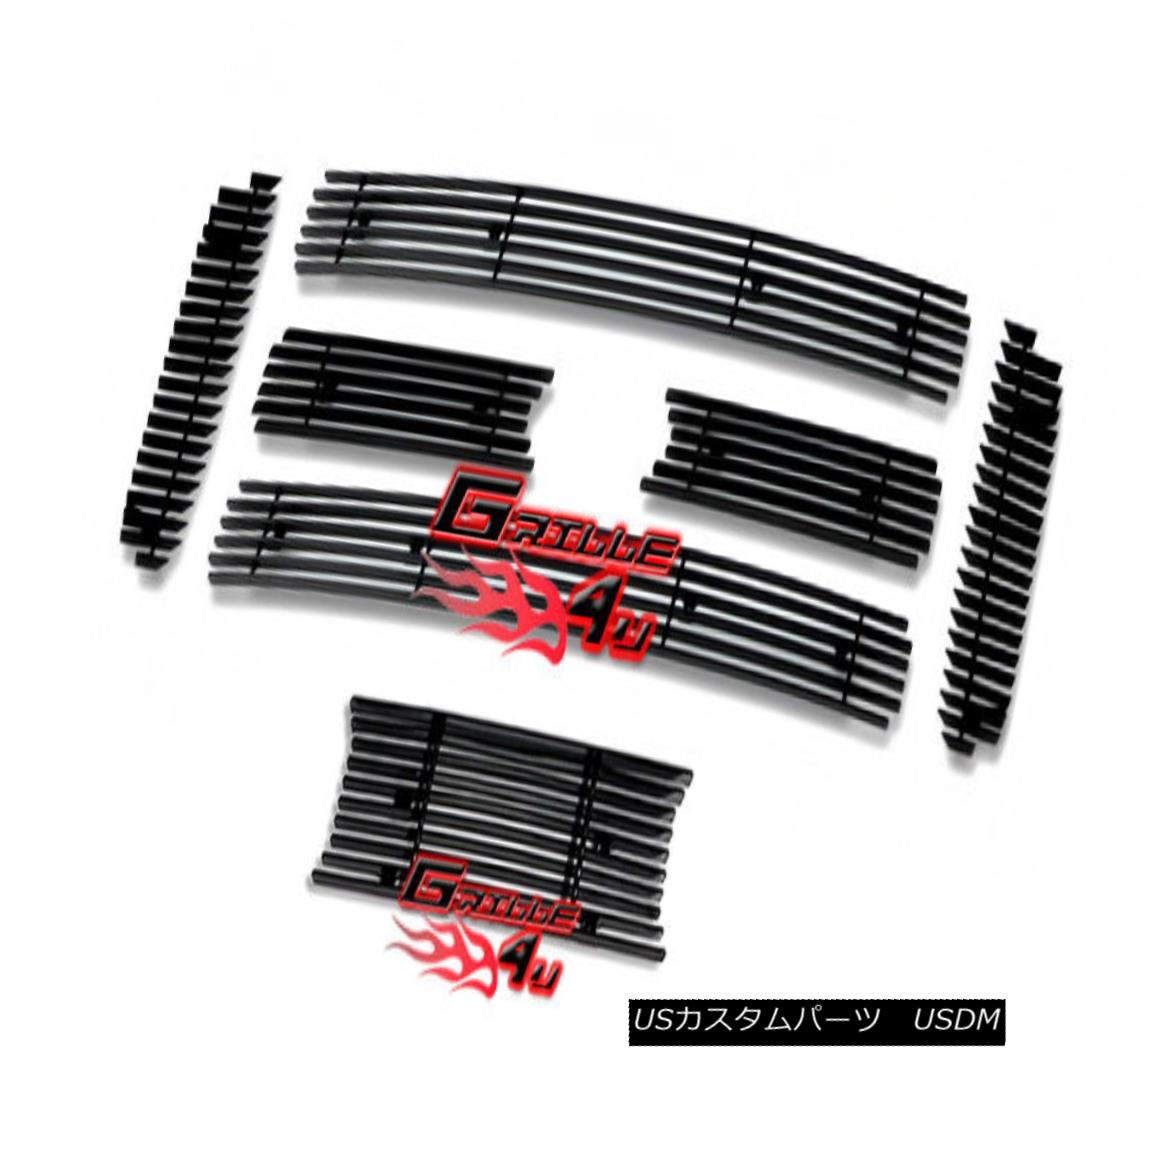 グリル For 05-07 Ford F250/F350/Excursion Black Billet Premium Grille Cobo 05-07 Ford F250 / F350 / Excu rsion Black BilletプレミアムグリルCobo